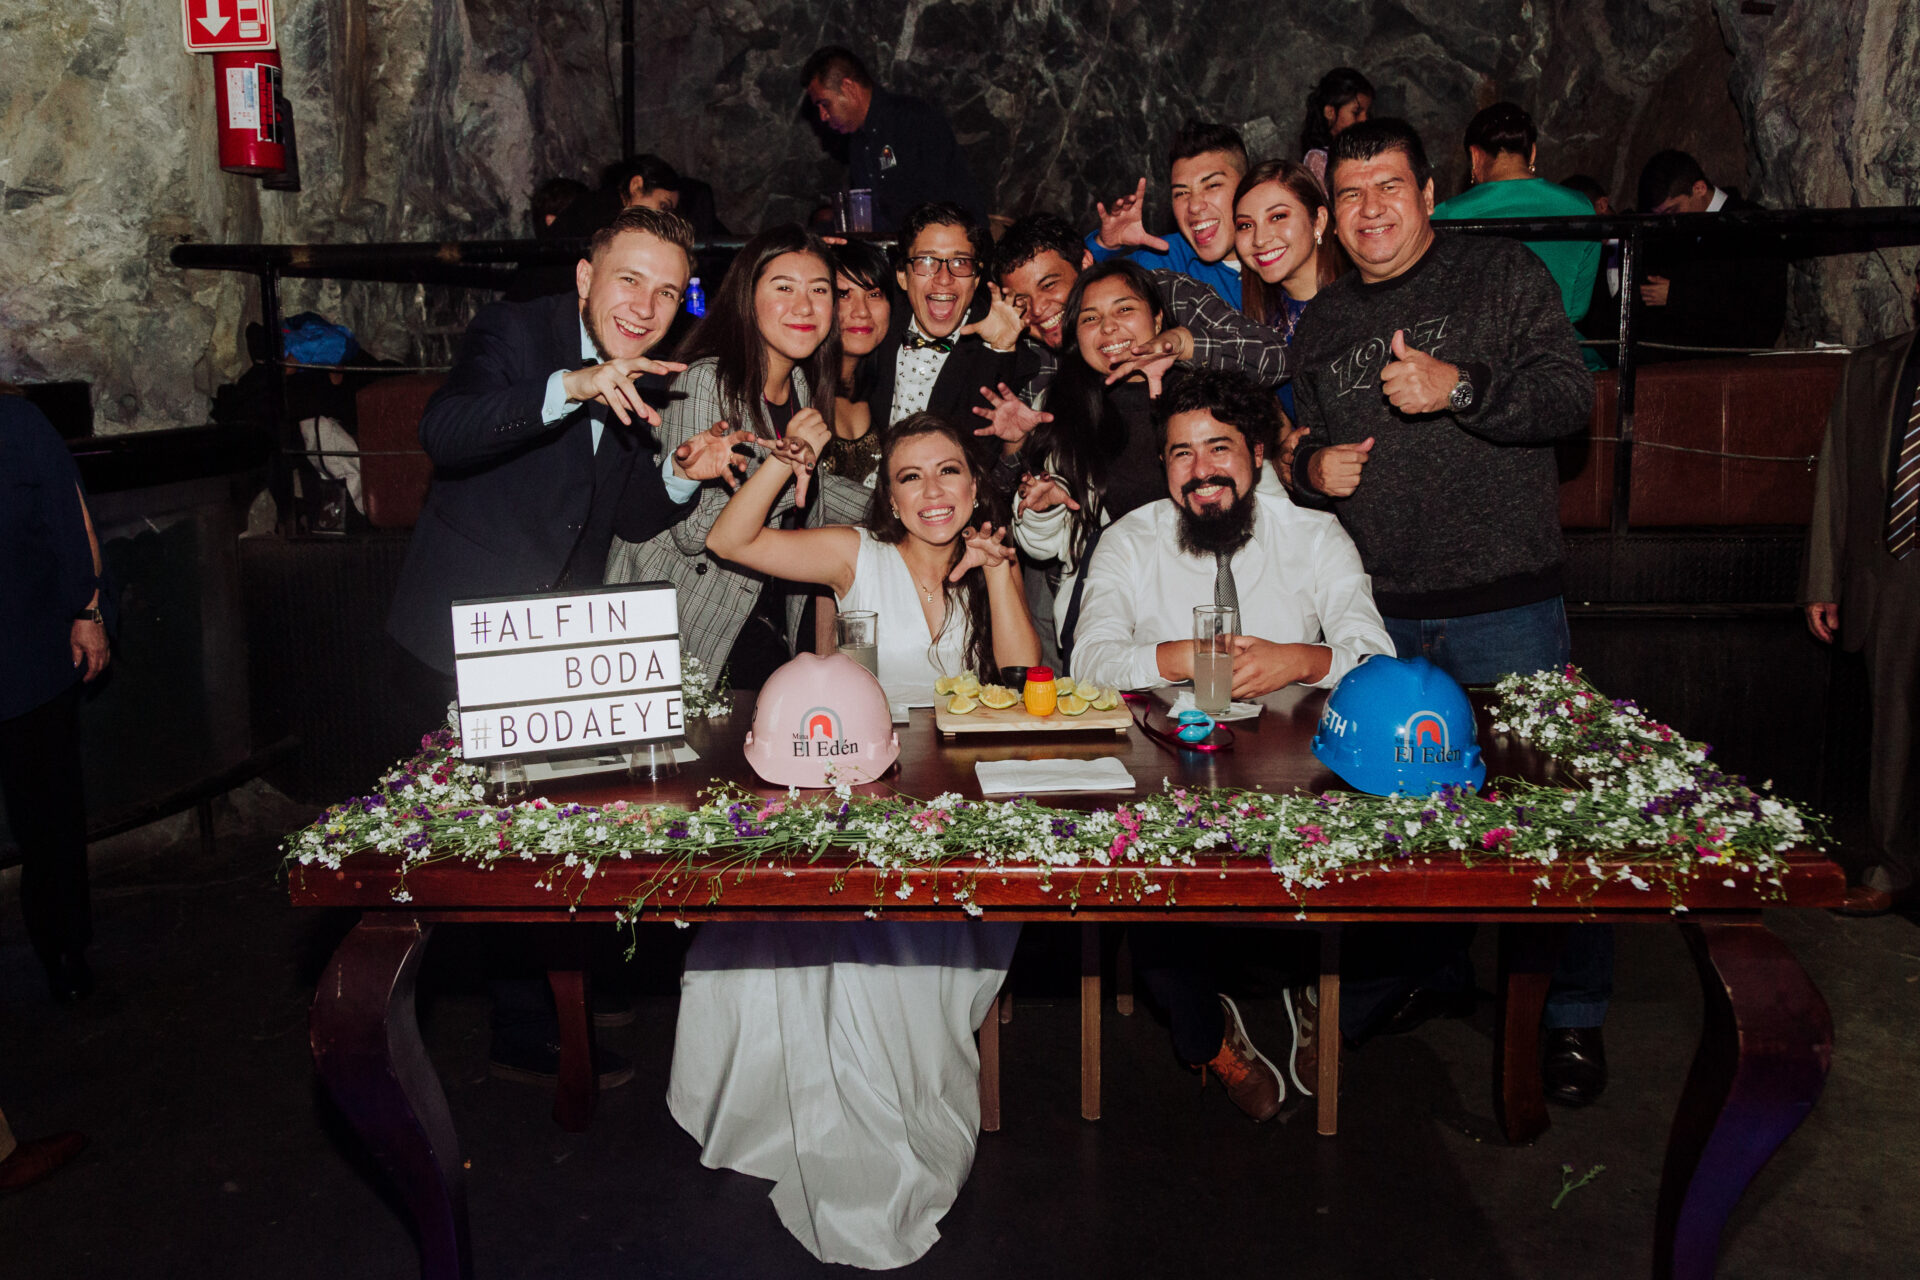 javier_noriega_fotografo_bodas_la_mina_club_zacatecas_wedding_photographer22